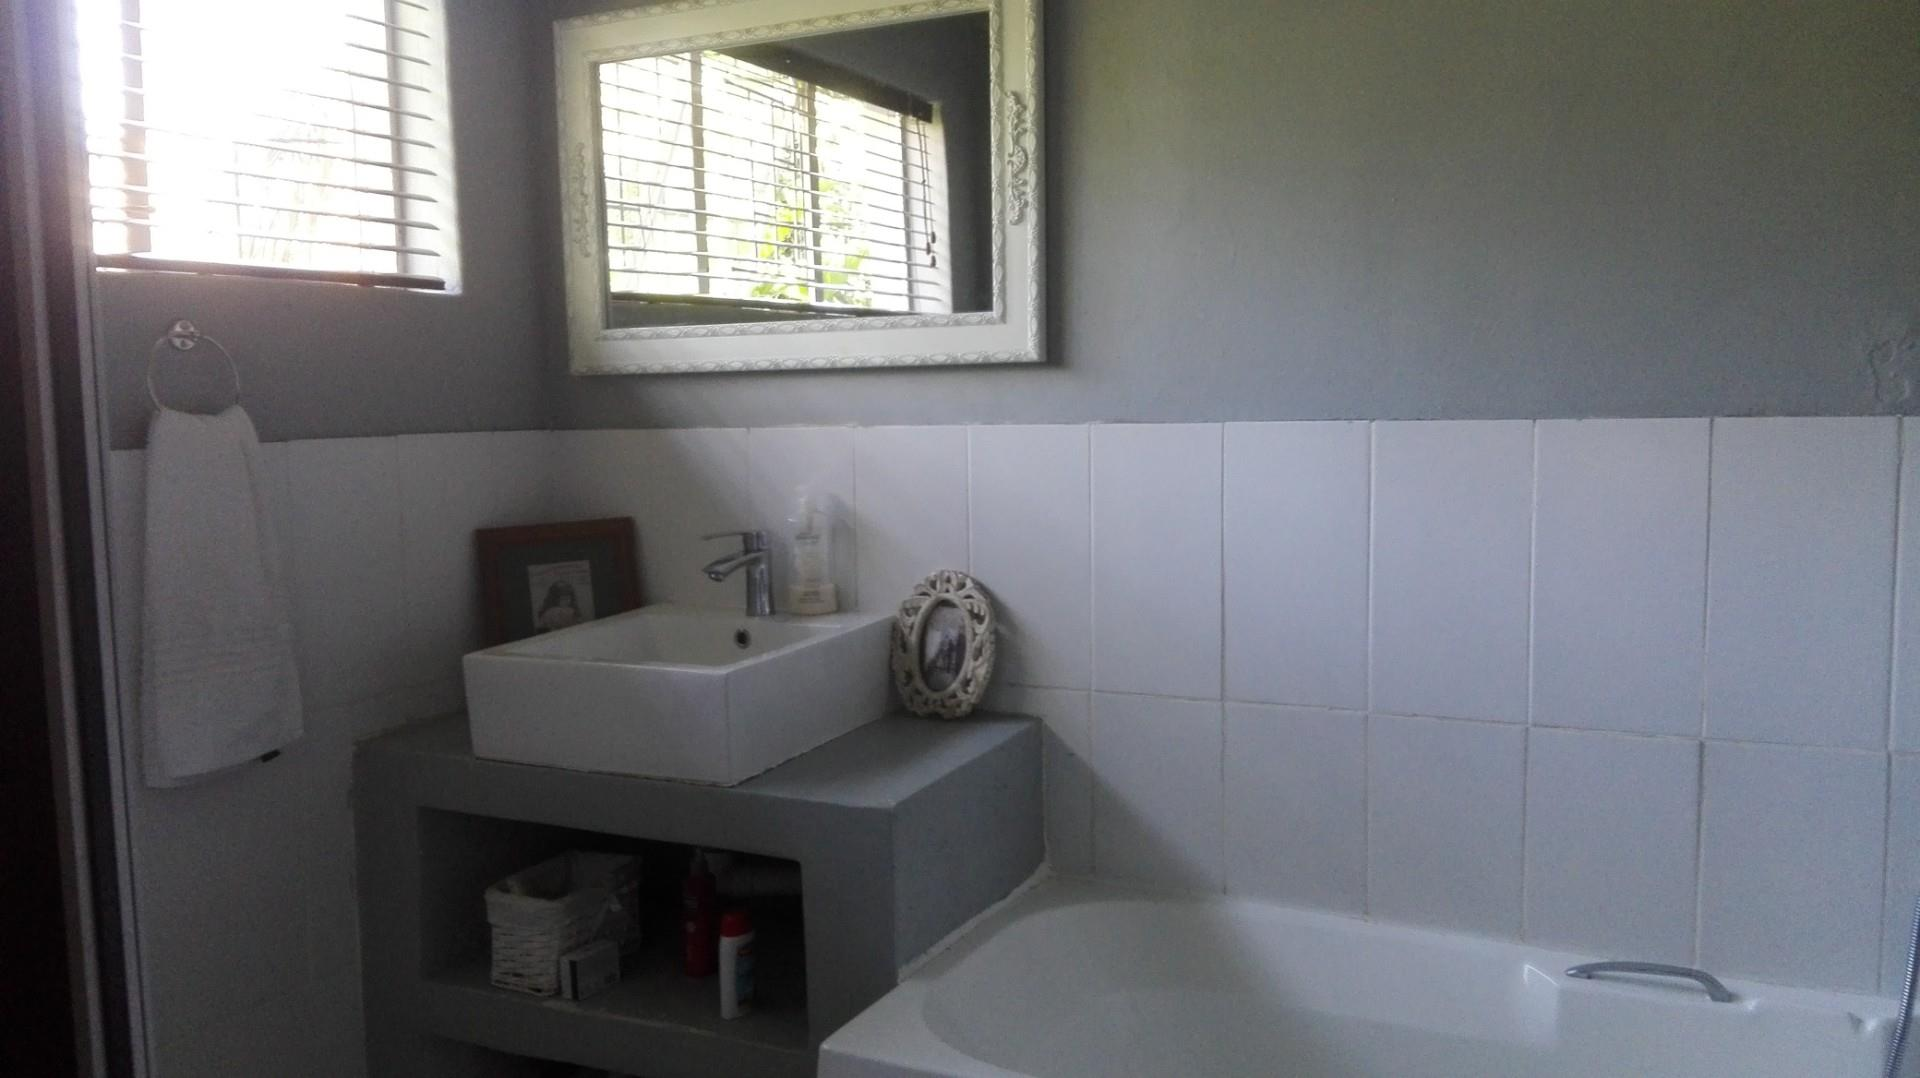 4 Bedroom House For Sale in Moregloed